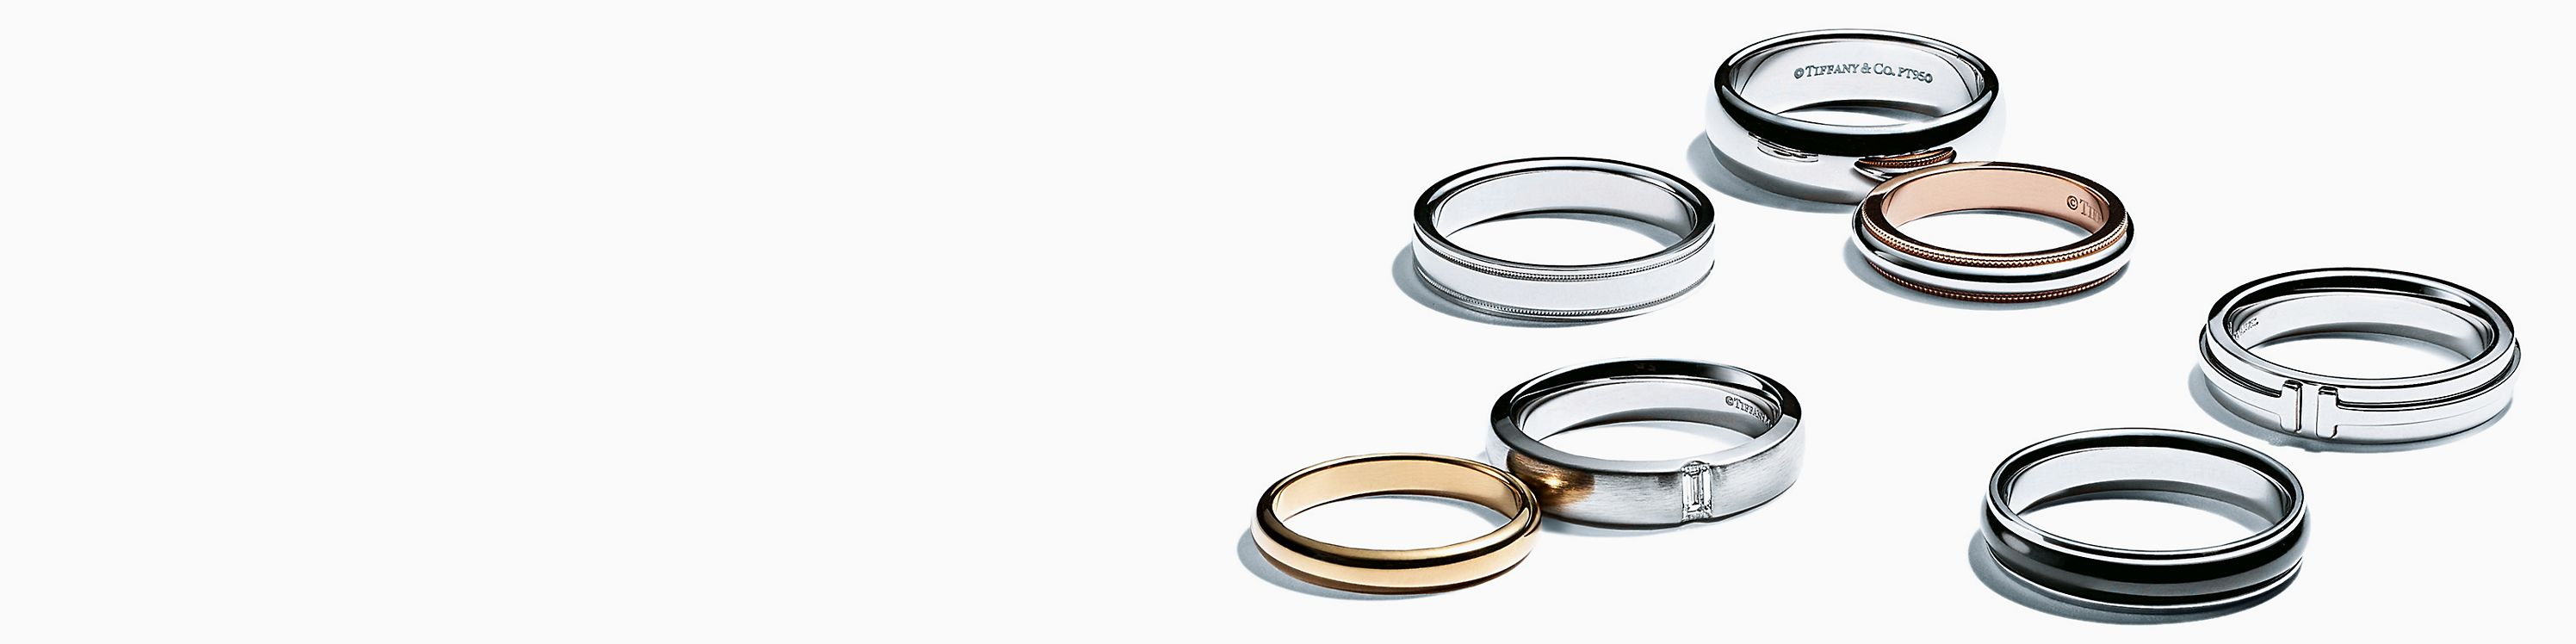 52836357b1a28 Men's Wedding Bands | Tiffany & Co.